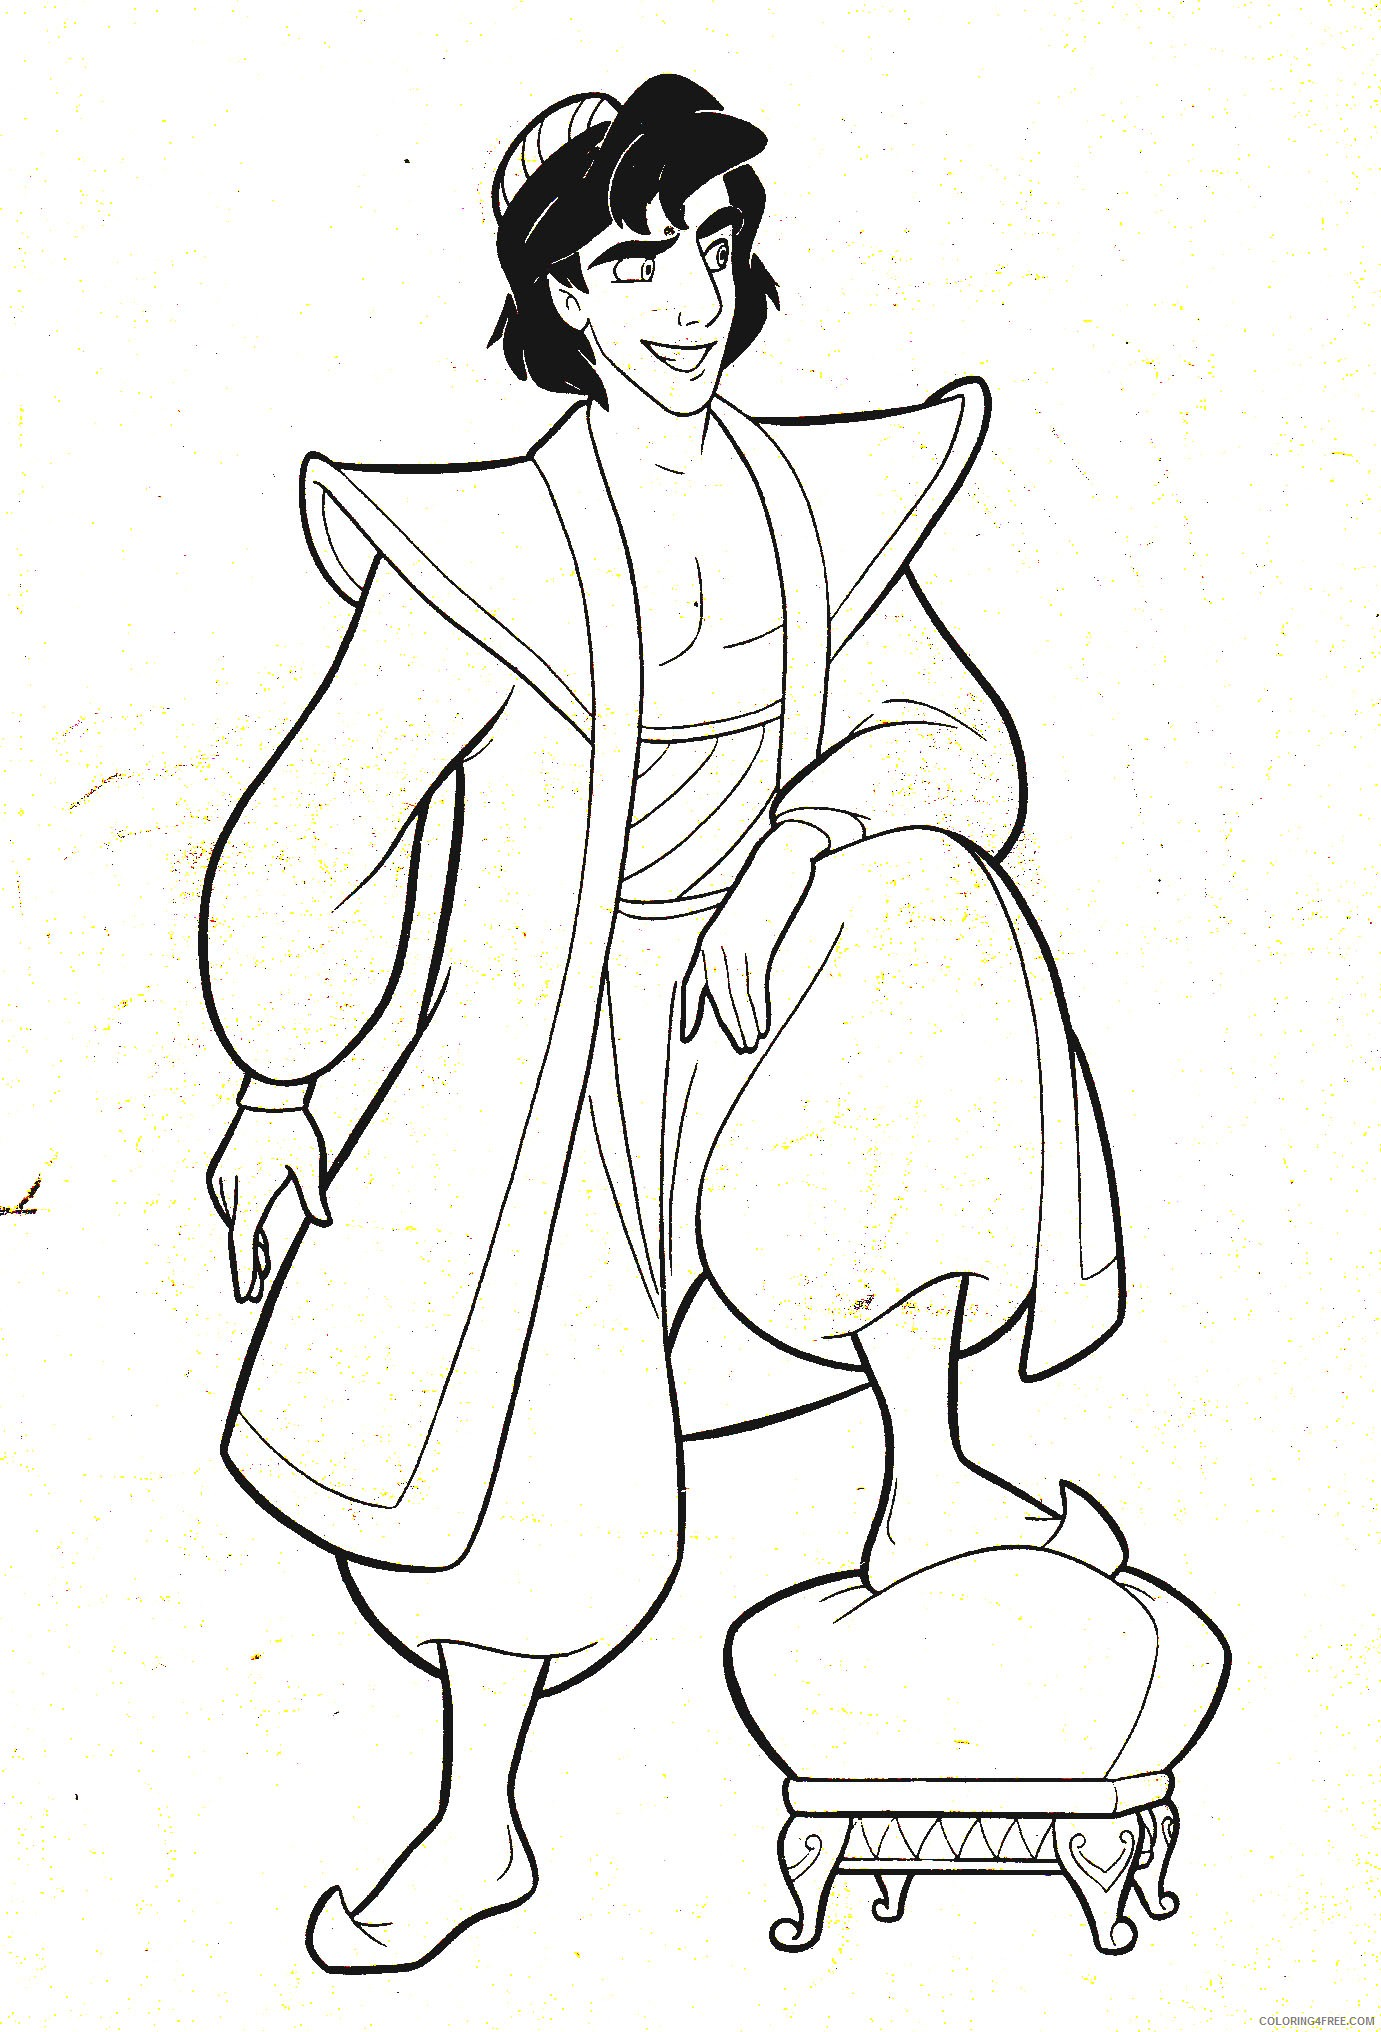 aladdin coloring pages for kids Coloring4free